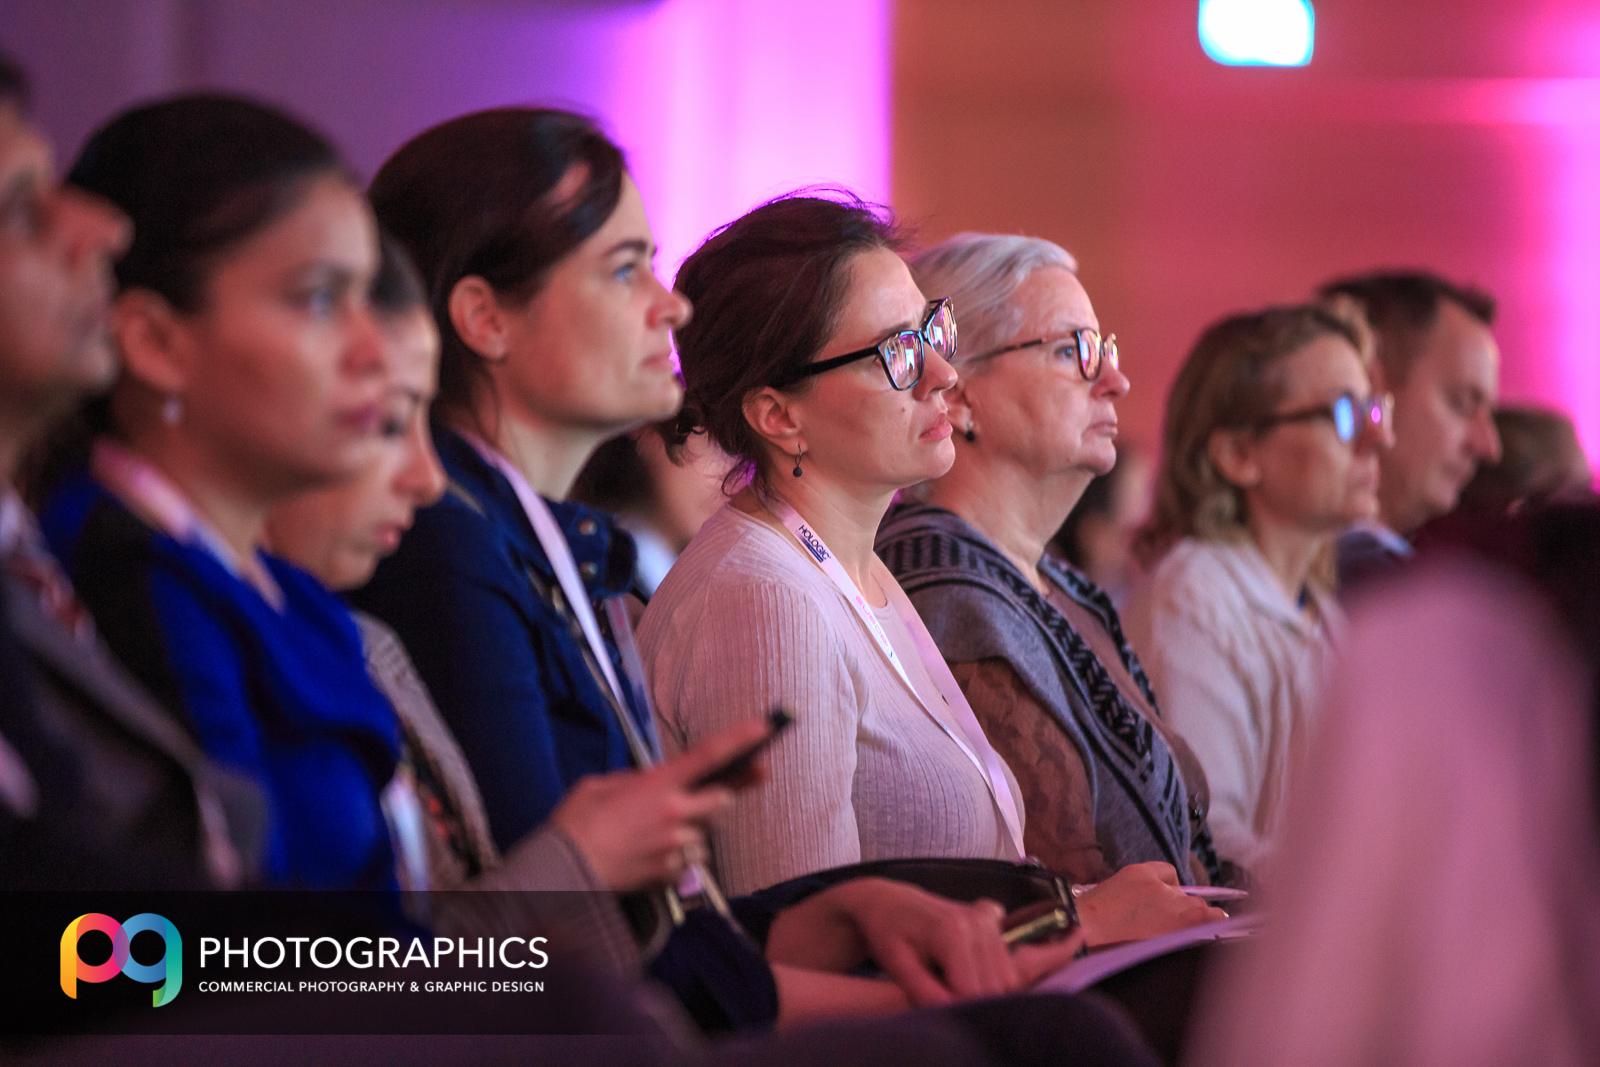 conference-event-photography-edinburgh-glasgow-berlin-8.jpg